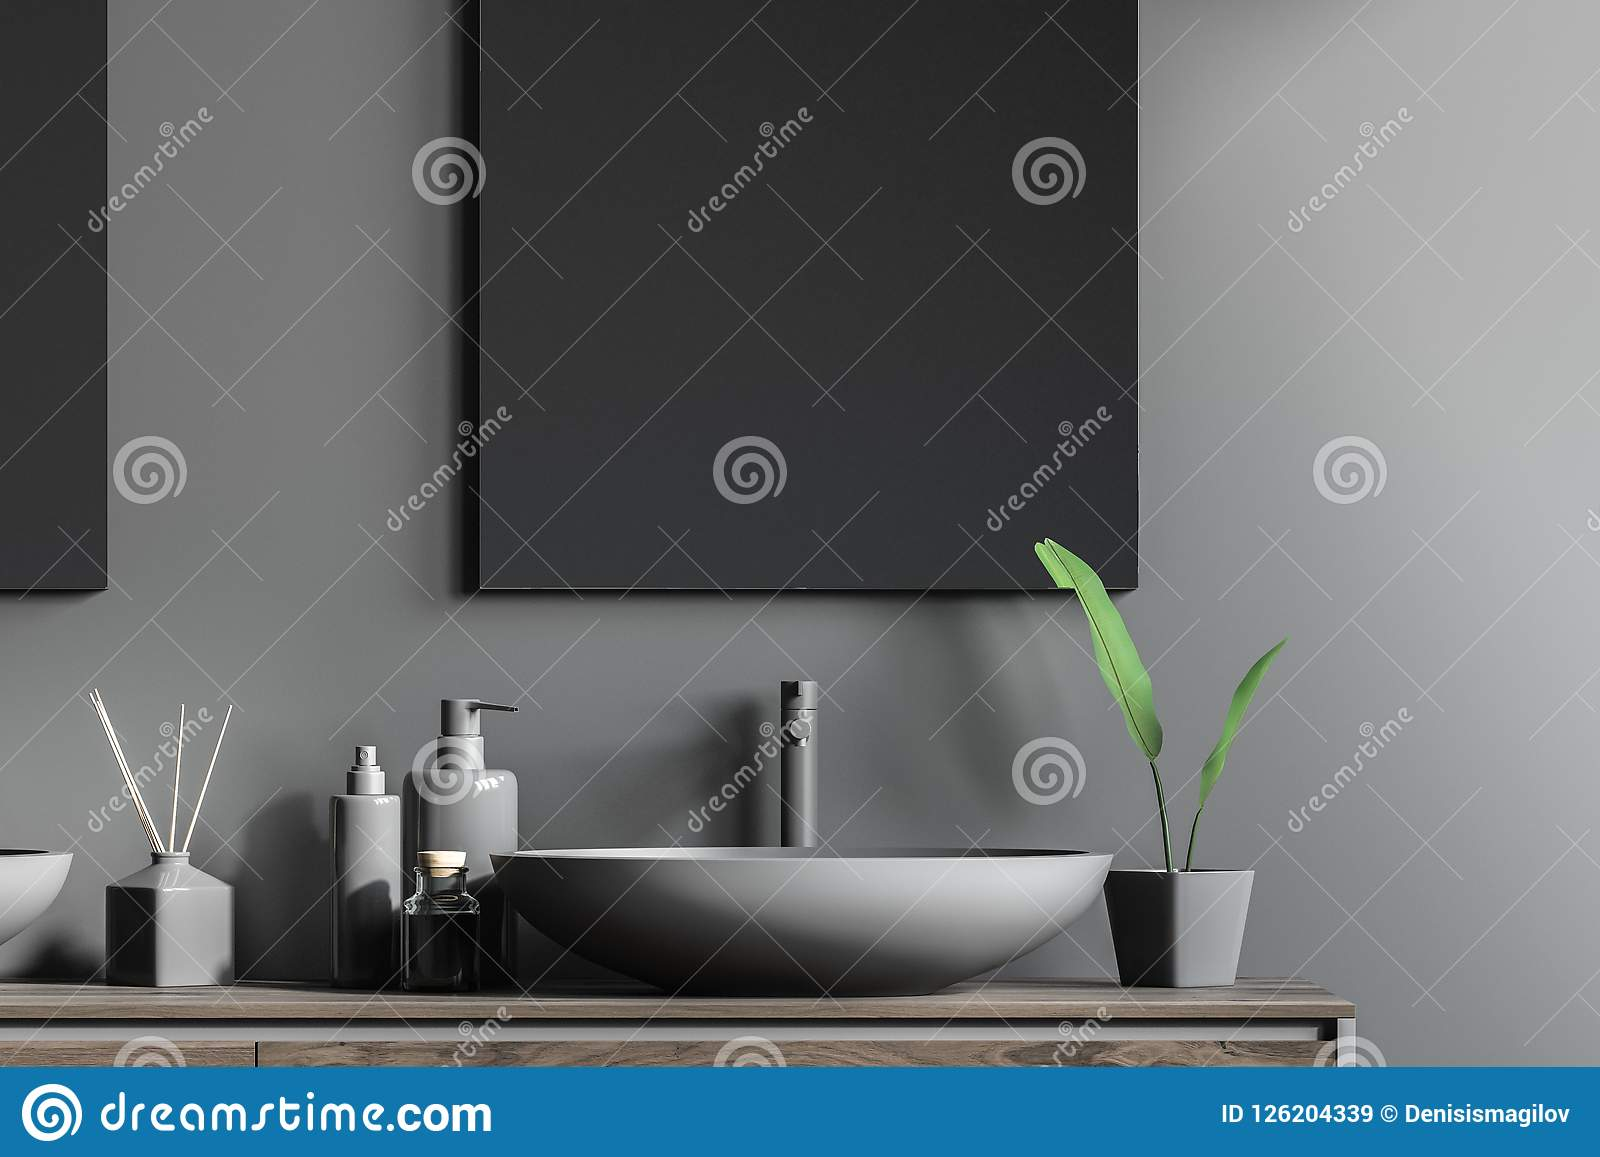 Sink On Wooden Vanity Unit Vertical Mirror Grey Stock Illustration Illustration Of Display Cozy 126204339